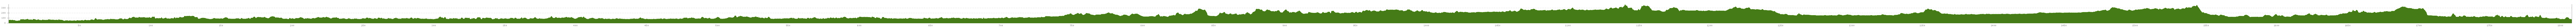 Elevation profile Cycle Route Järvenpää - Utsjoki